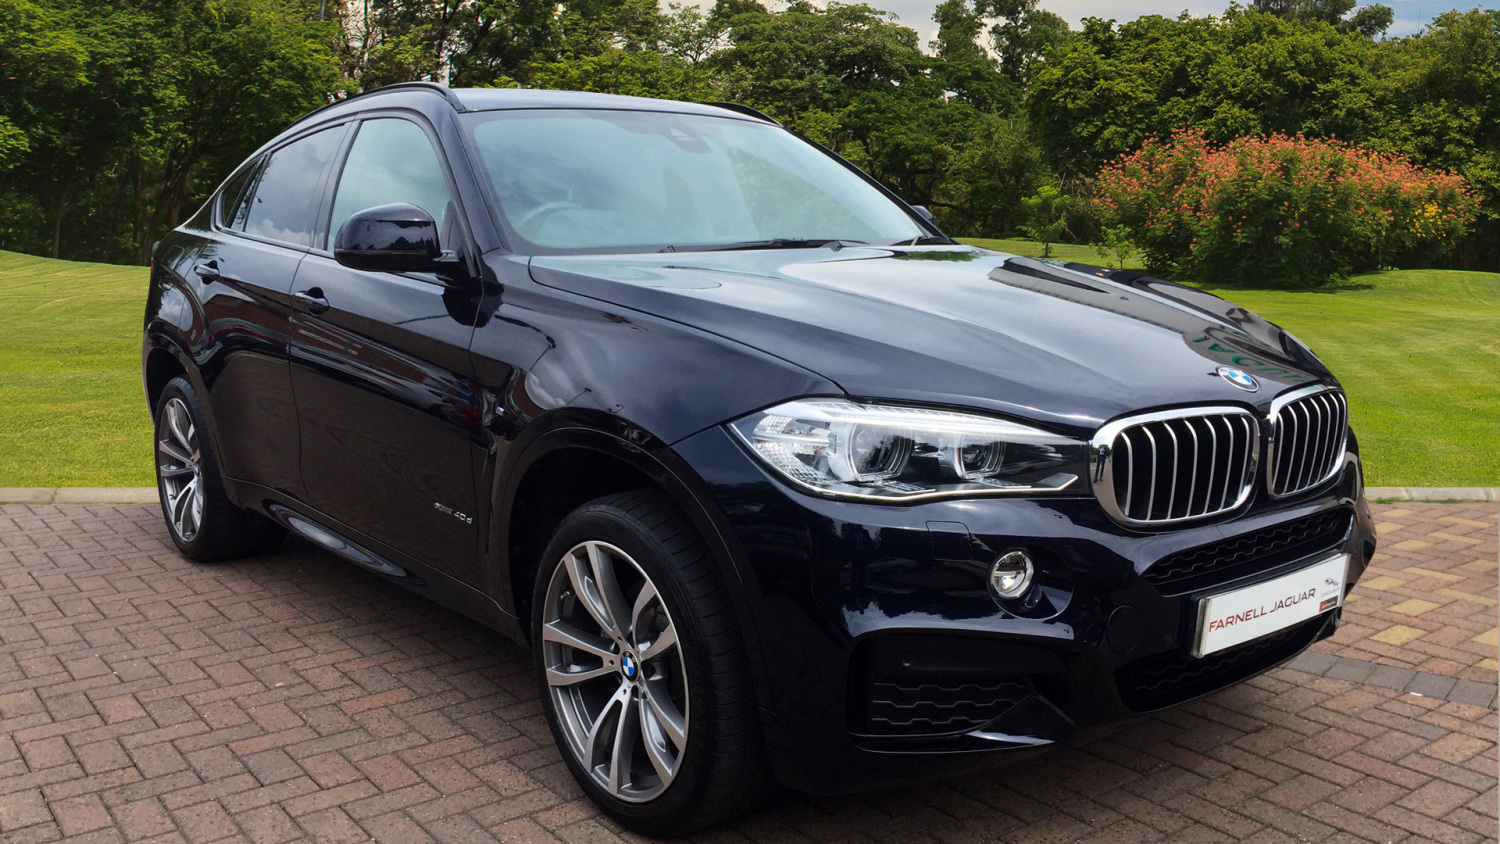 Used Bmw X6 Xdrive40d M Sport 5dr Step Auto Diesel Estate